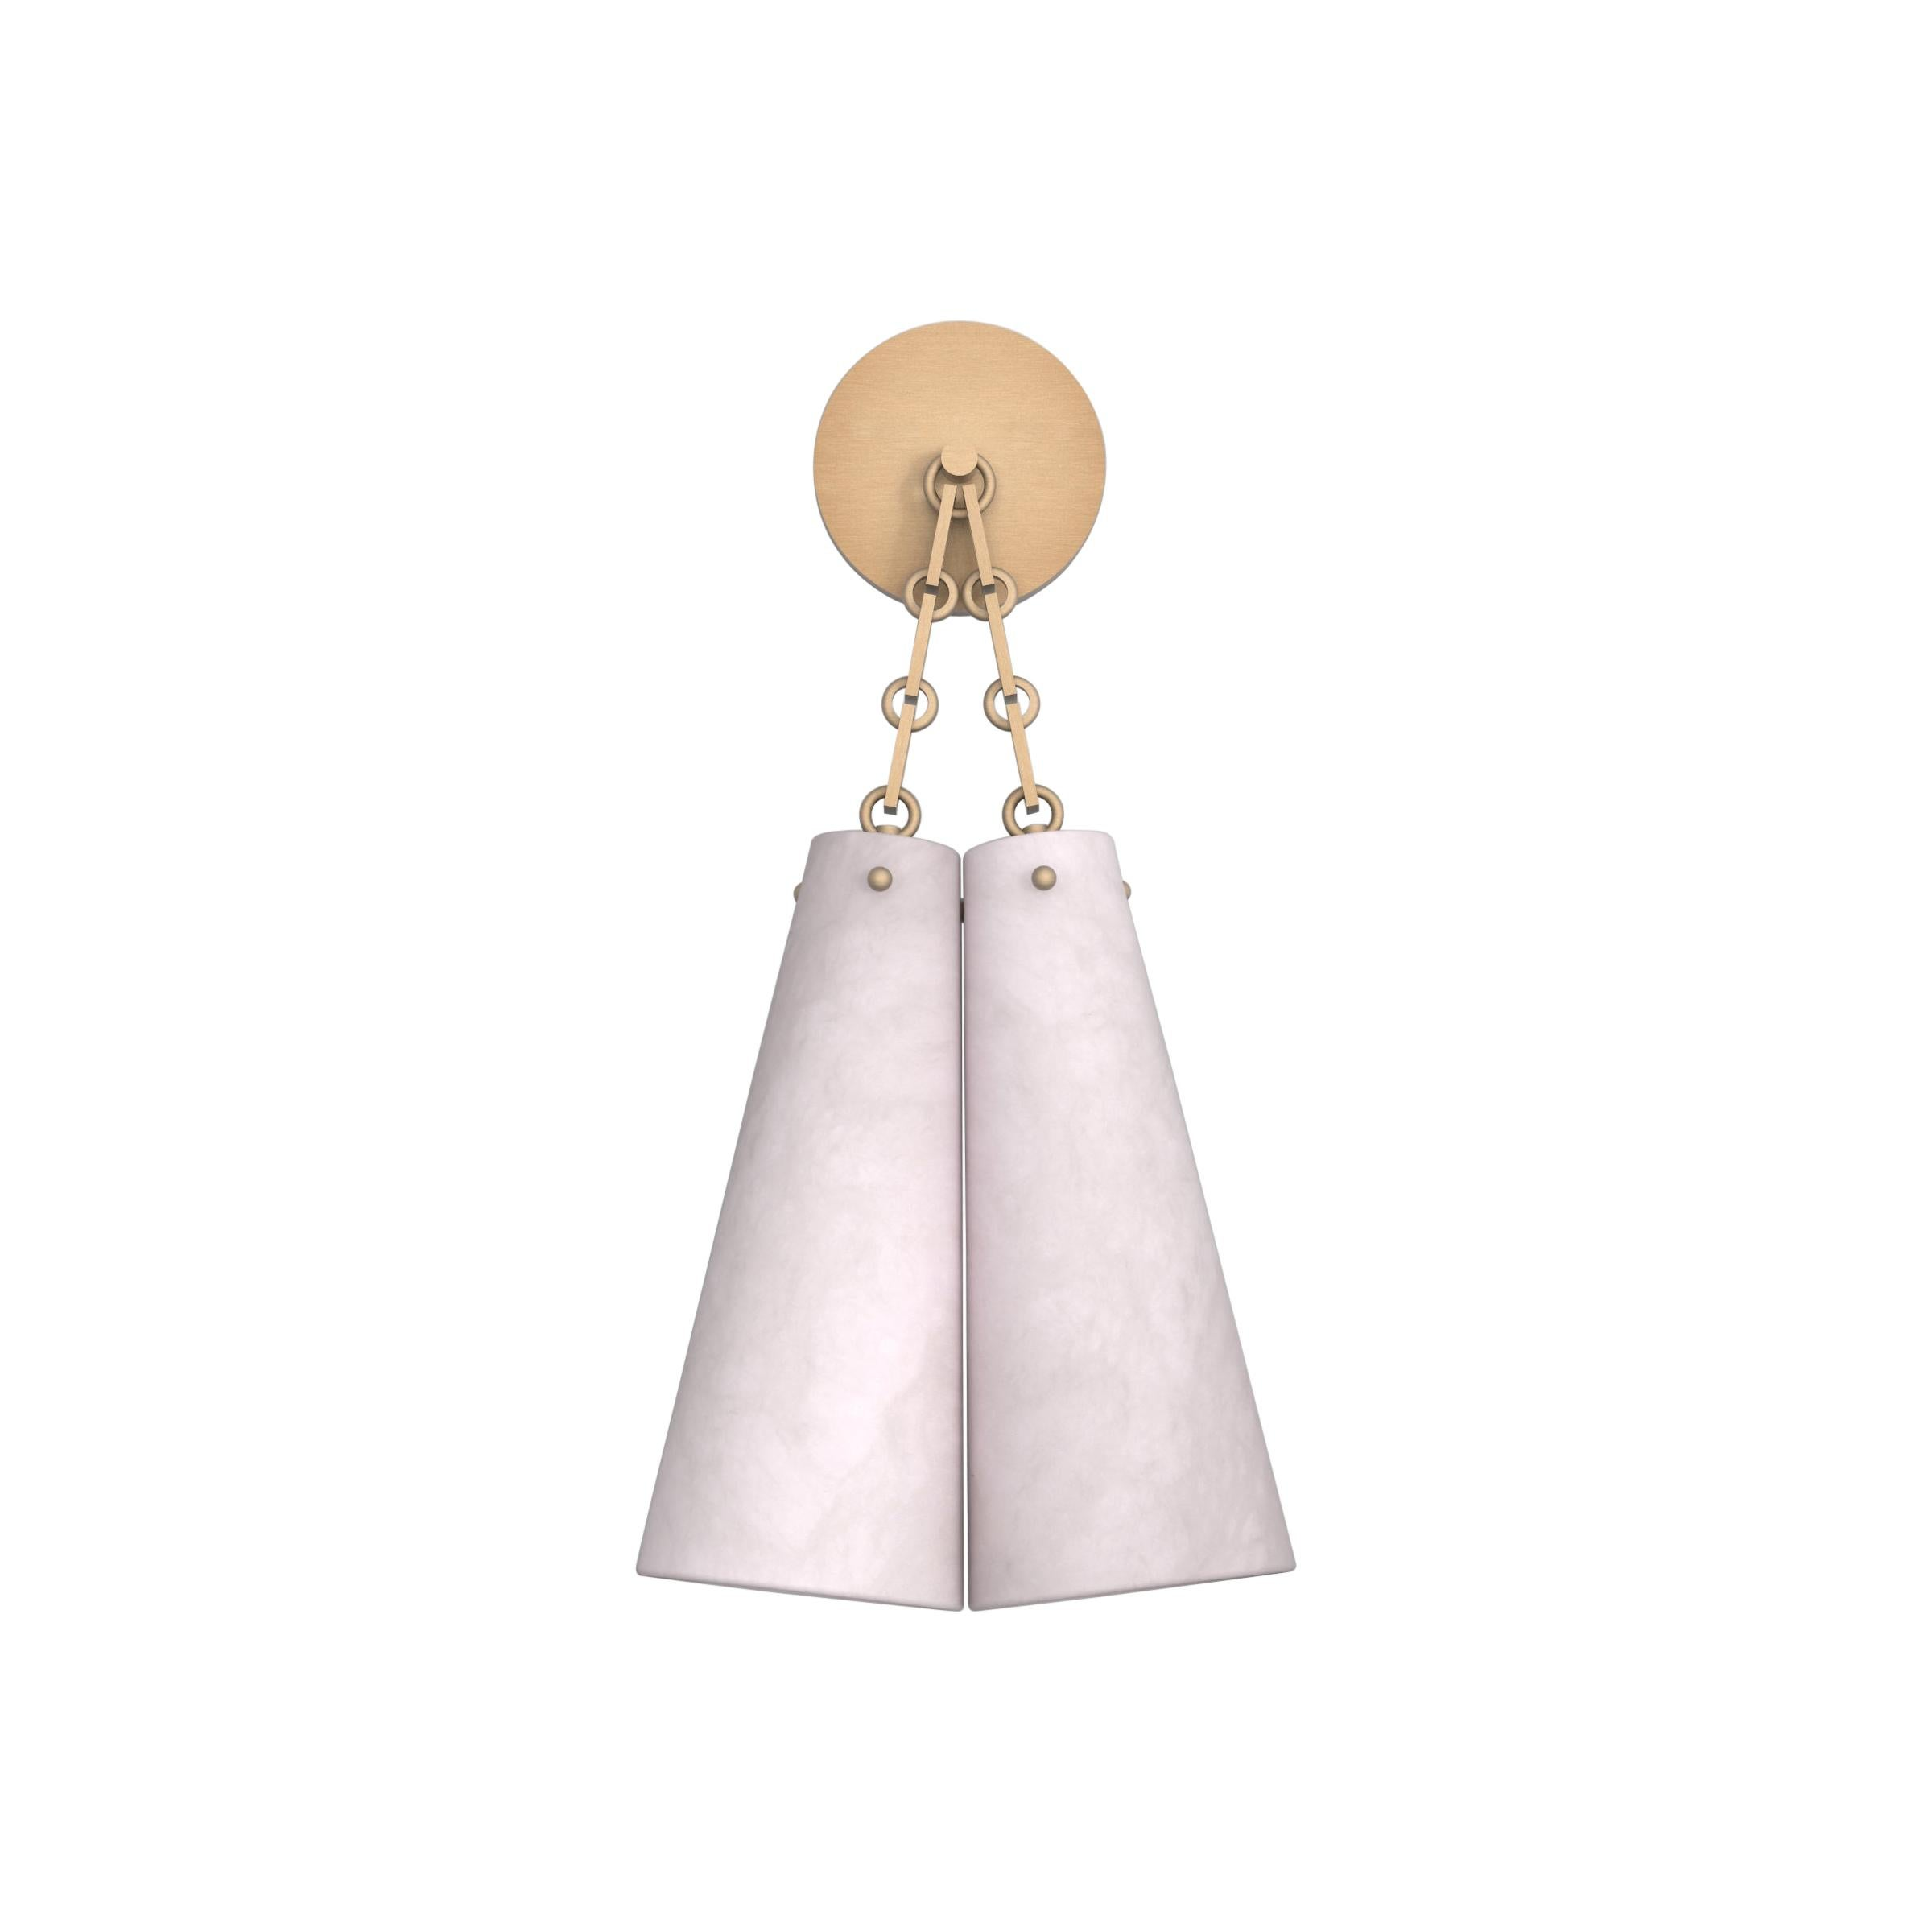 Contemporary 202A Double Sconce in Alabaster by Orphan Work, 2021